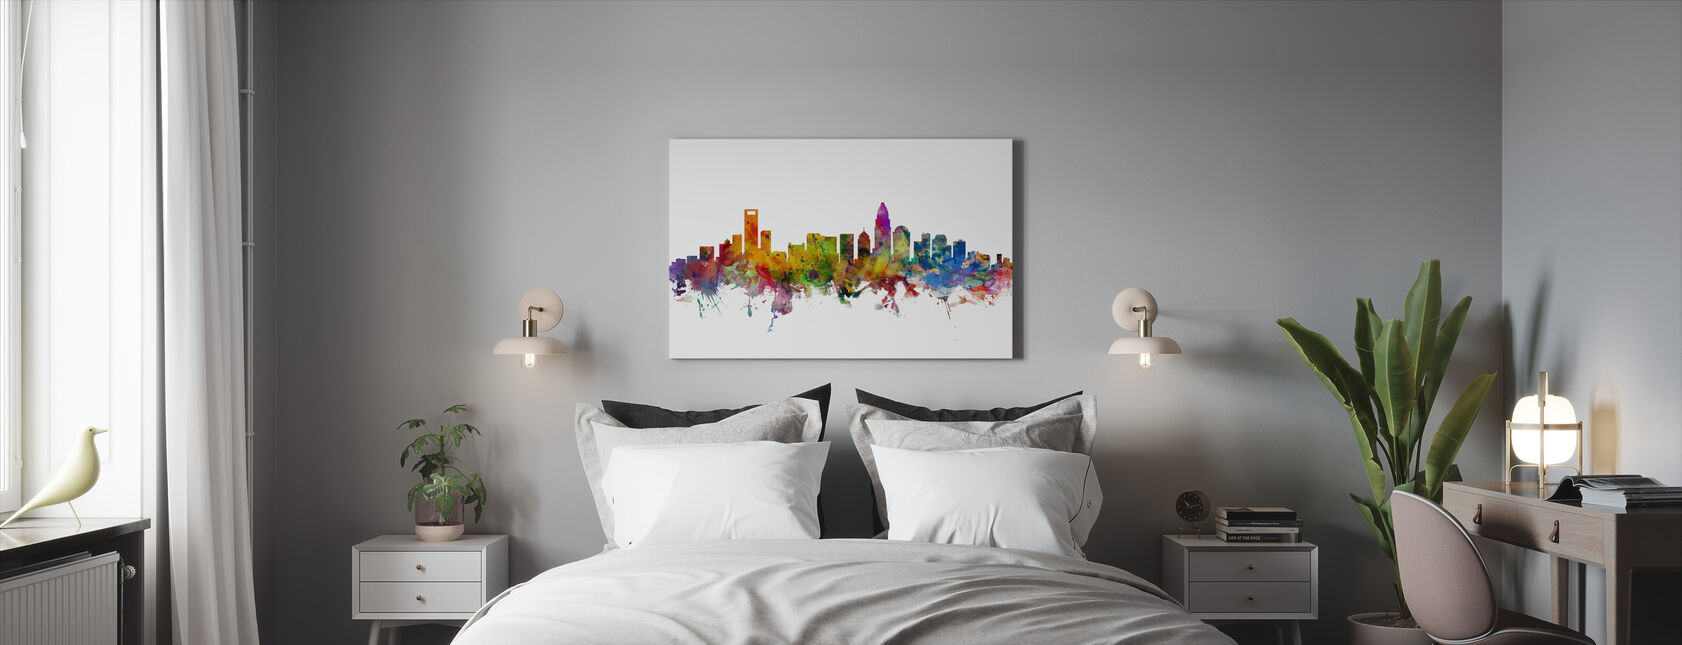 Charlotte North Carolina Skyline - Canvas print - Bedroom